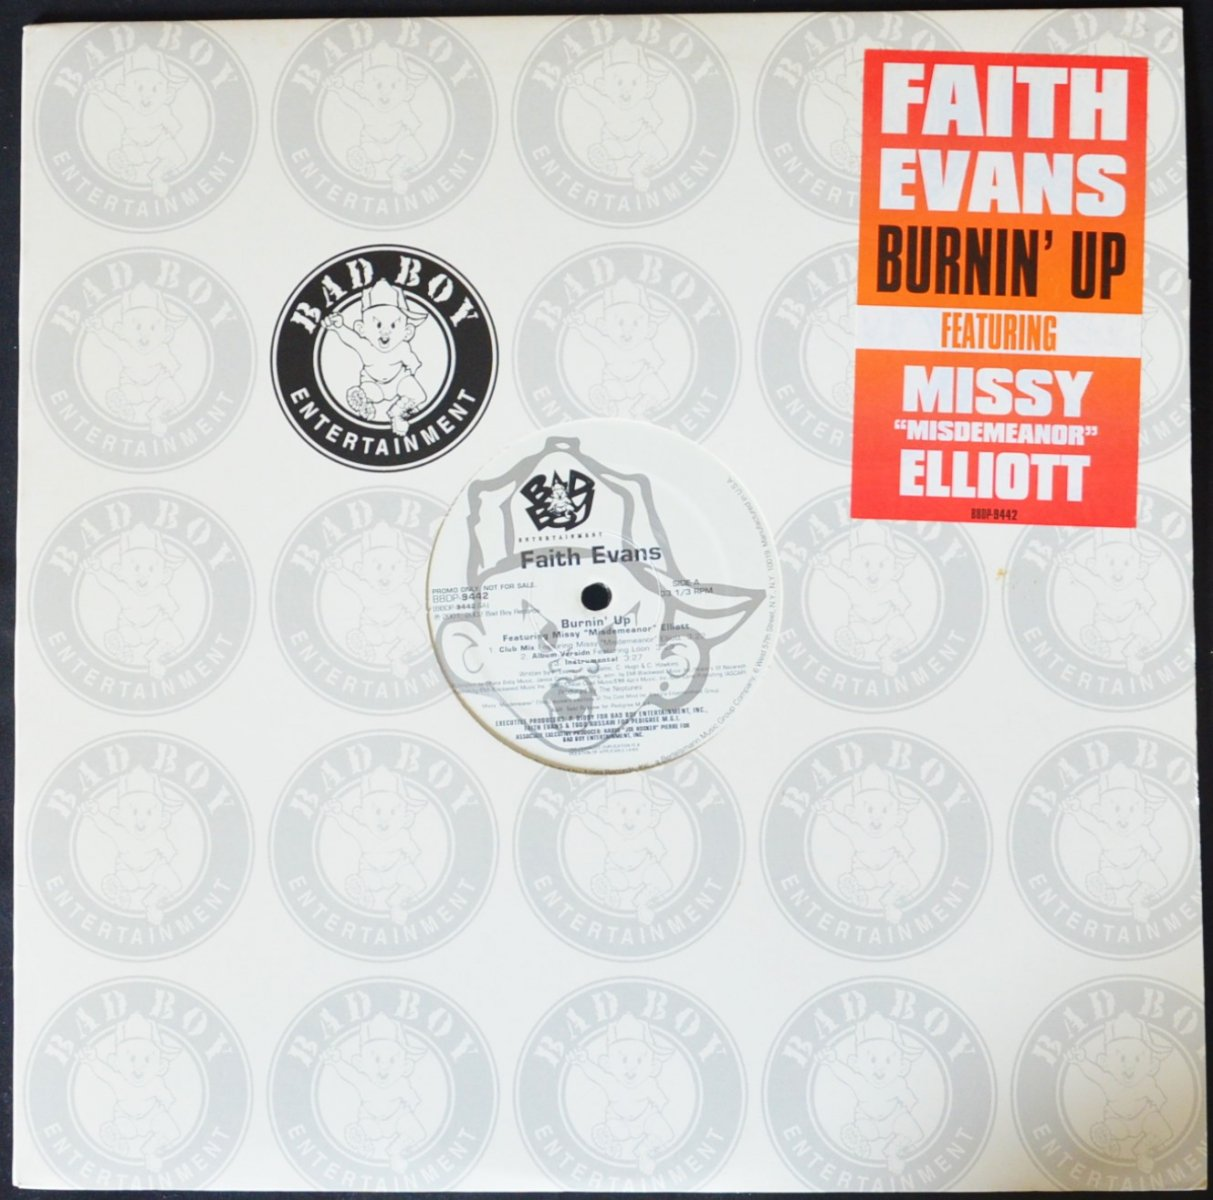 FAITH EVANS / BURNIN' UP (PROD BY THE NEPTUNES) / FAITHFULLY (PROD BY BATTLECAT) (12